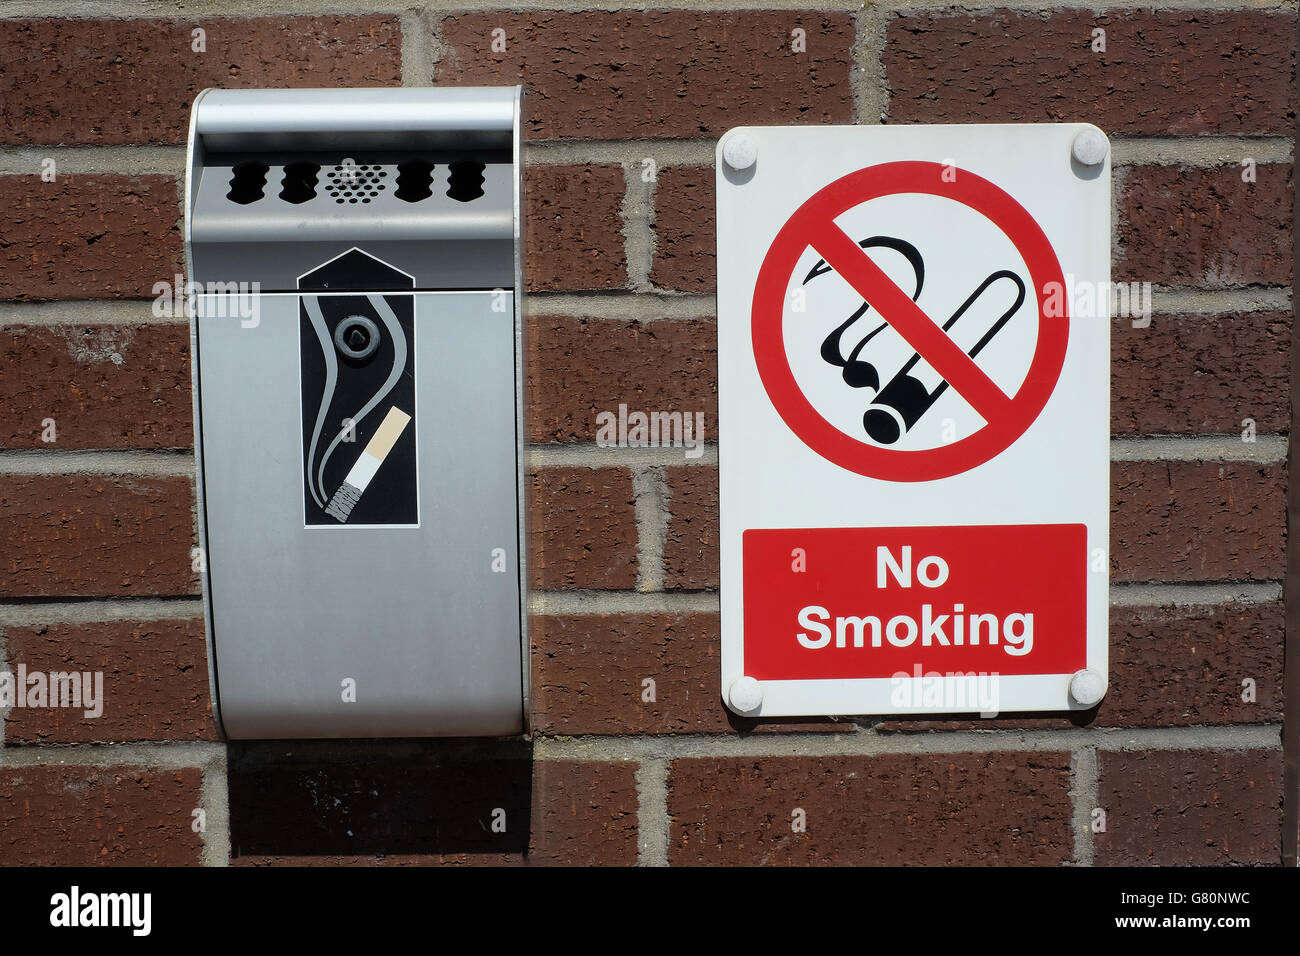 No smoking sign and cigarette waste receptacle. - Stock Image